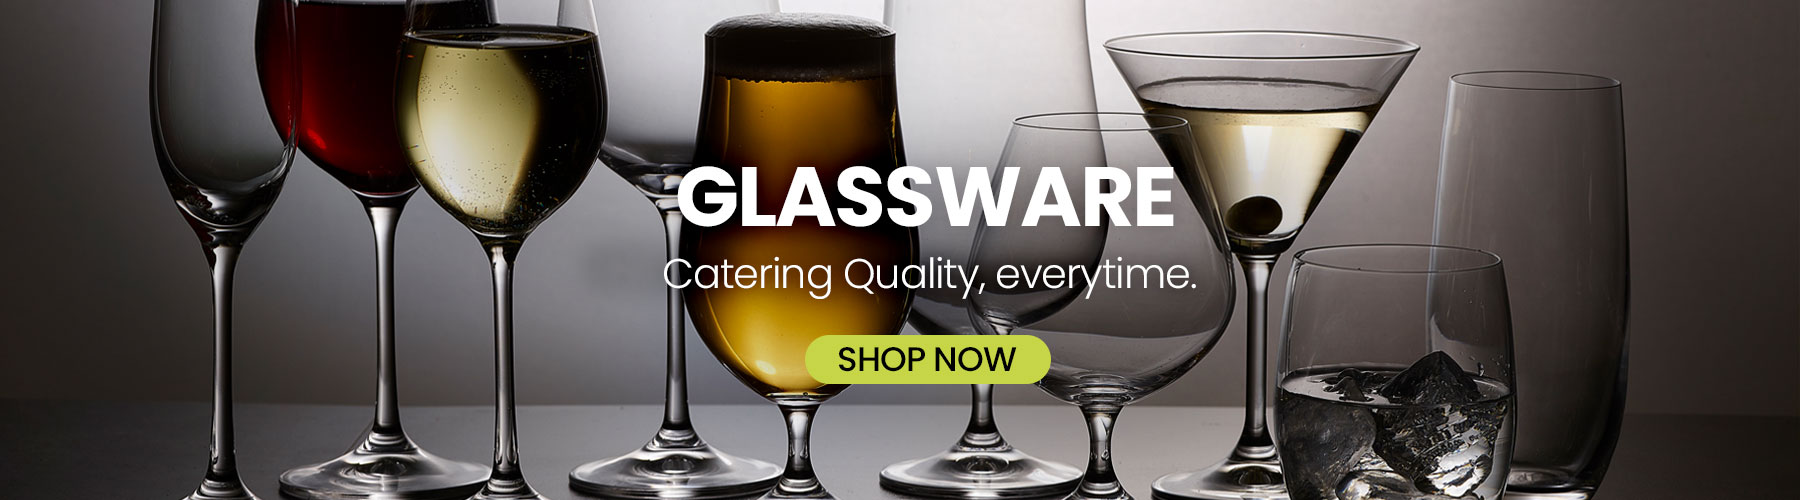 Catering-Quality-Glassware-wine glasses-champagne flutes